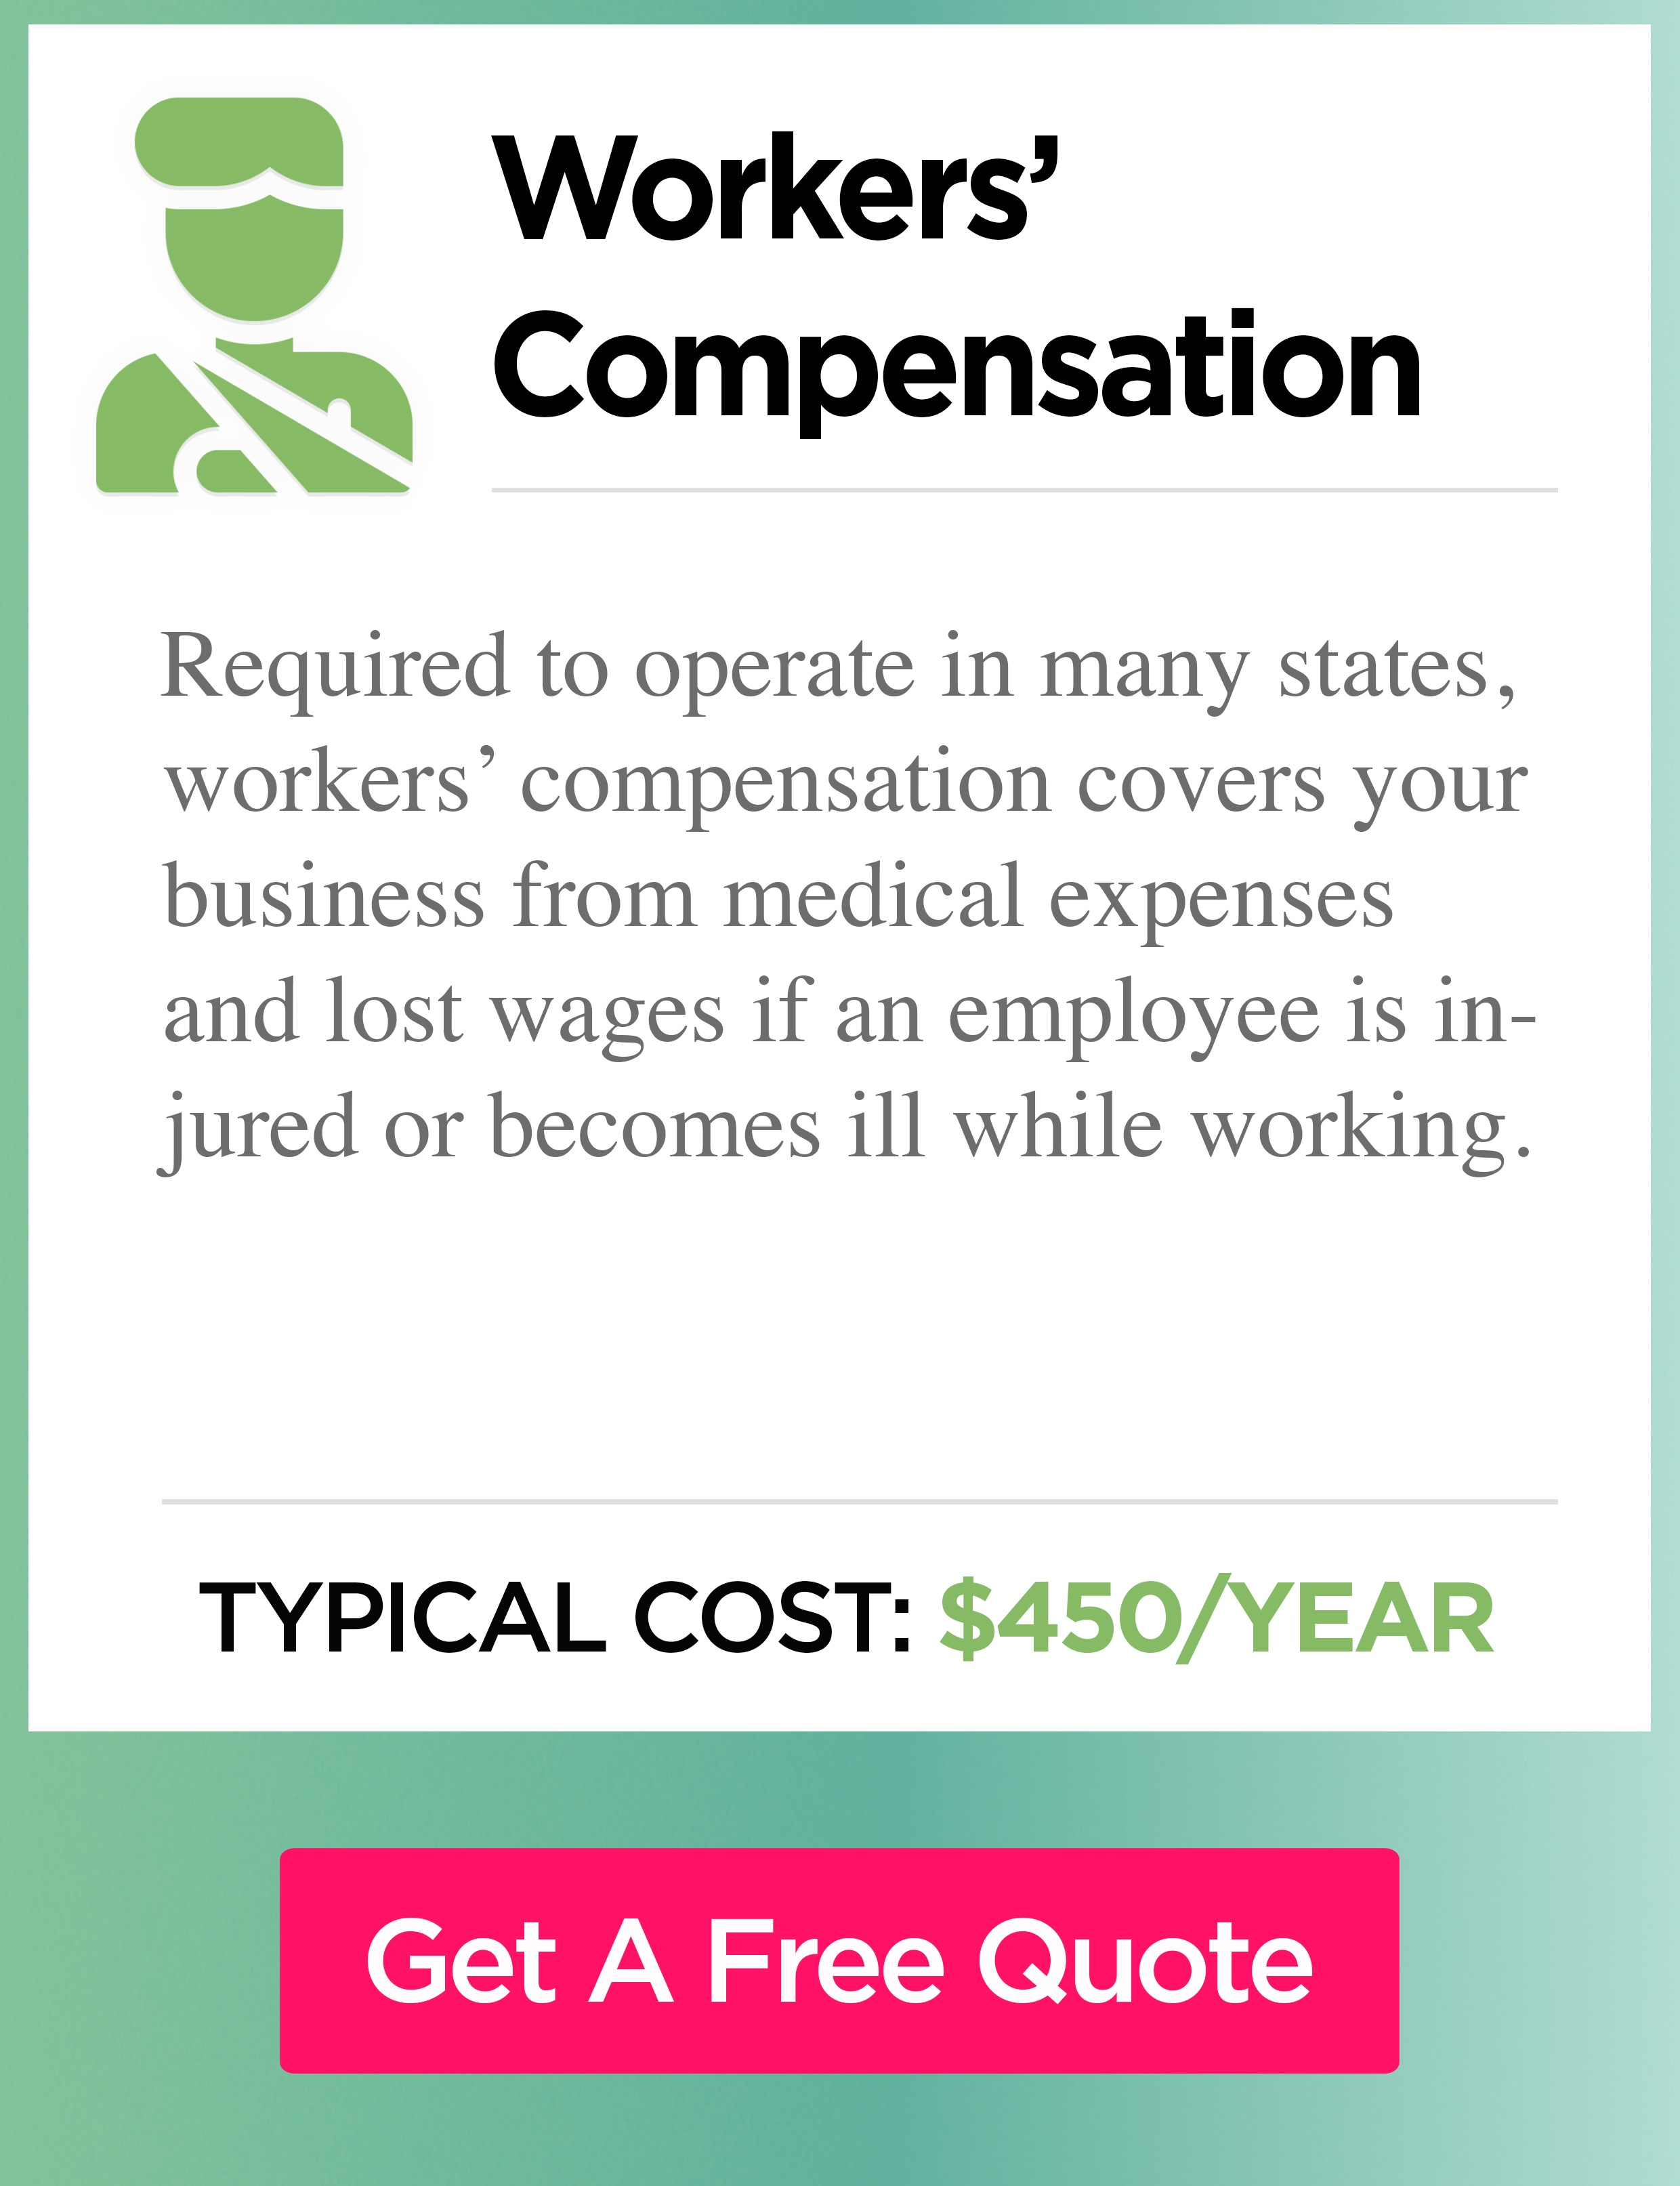 Workers' compensation insurance cost